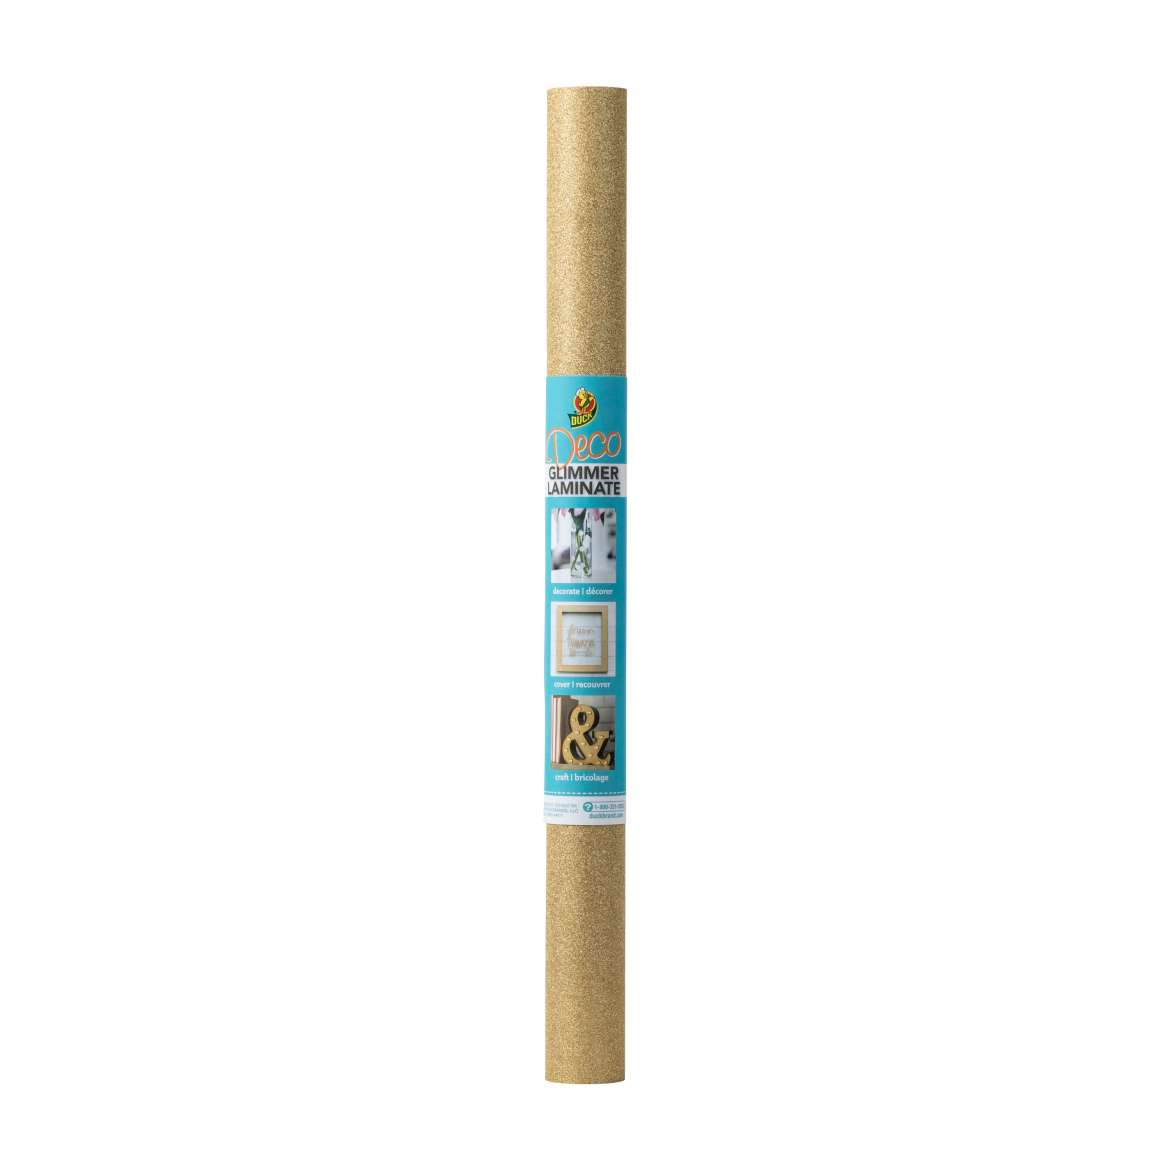 Duck® Brand Deco Adhesive Laminate - Glimmer Gold, 20 in. x 6 ft. Image